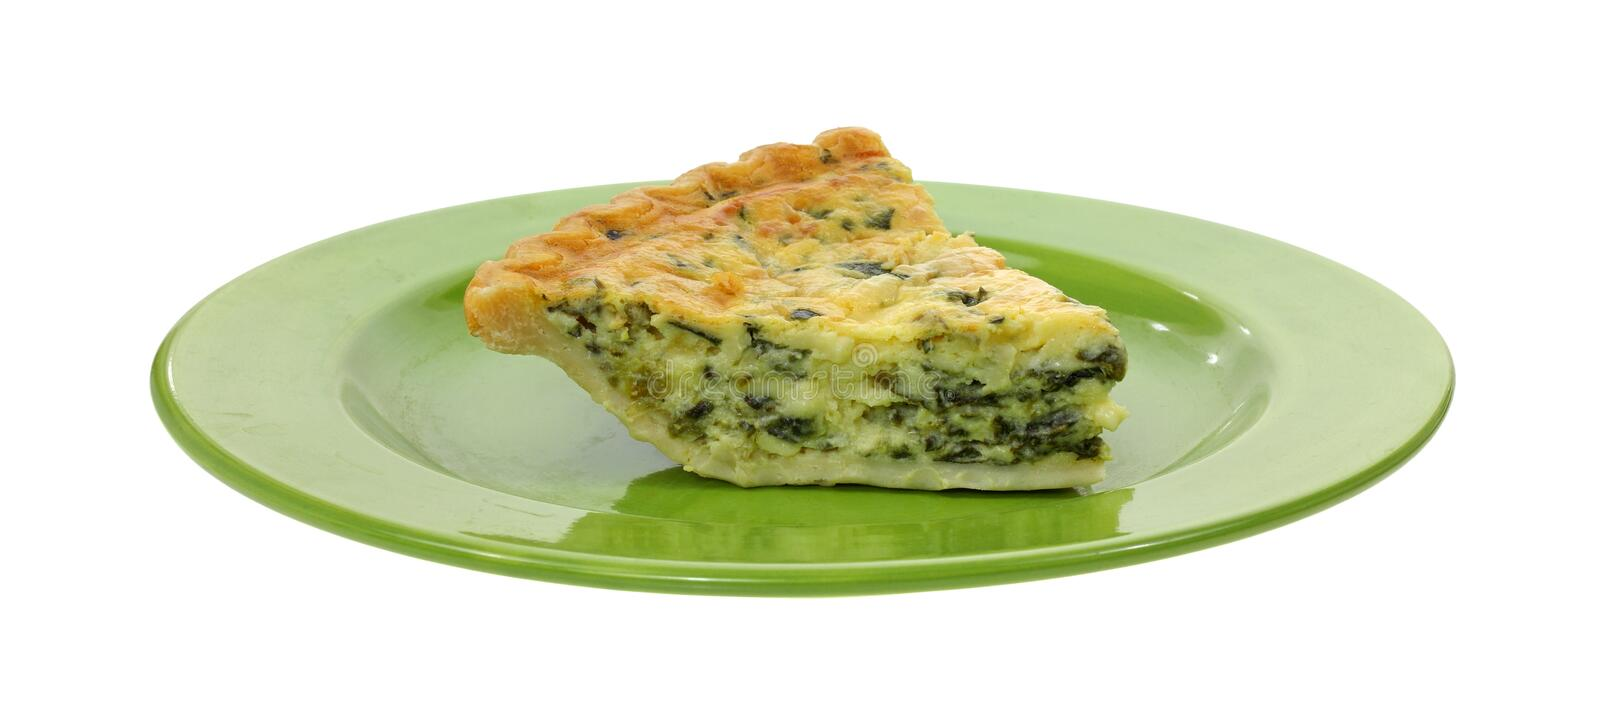 Portion de quiche d'épinards de plaque verte image stock